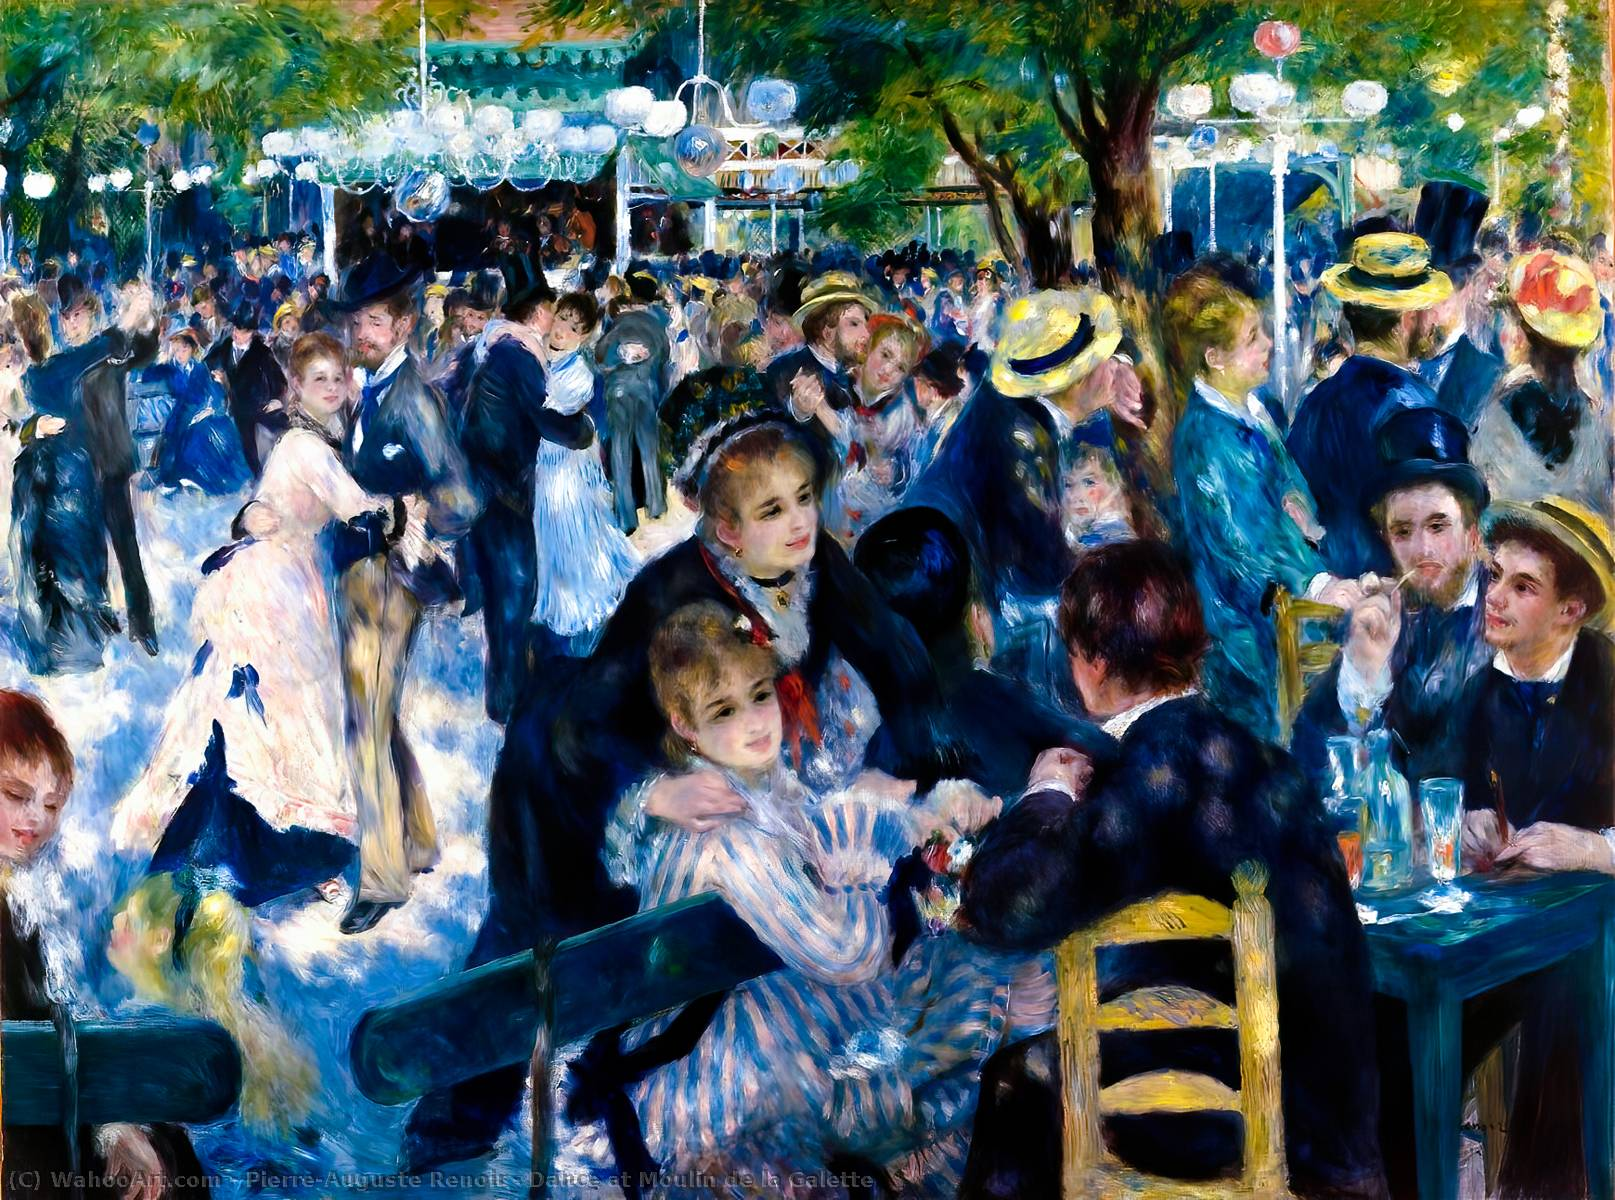 Dance at Moulin de la Galette, Oil On Canvas by Pierre-Auguste Renoir (1841-1919, France)